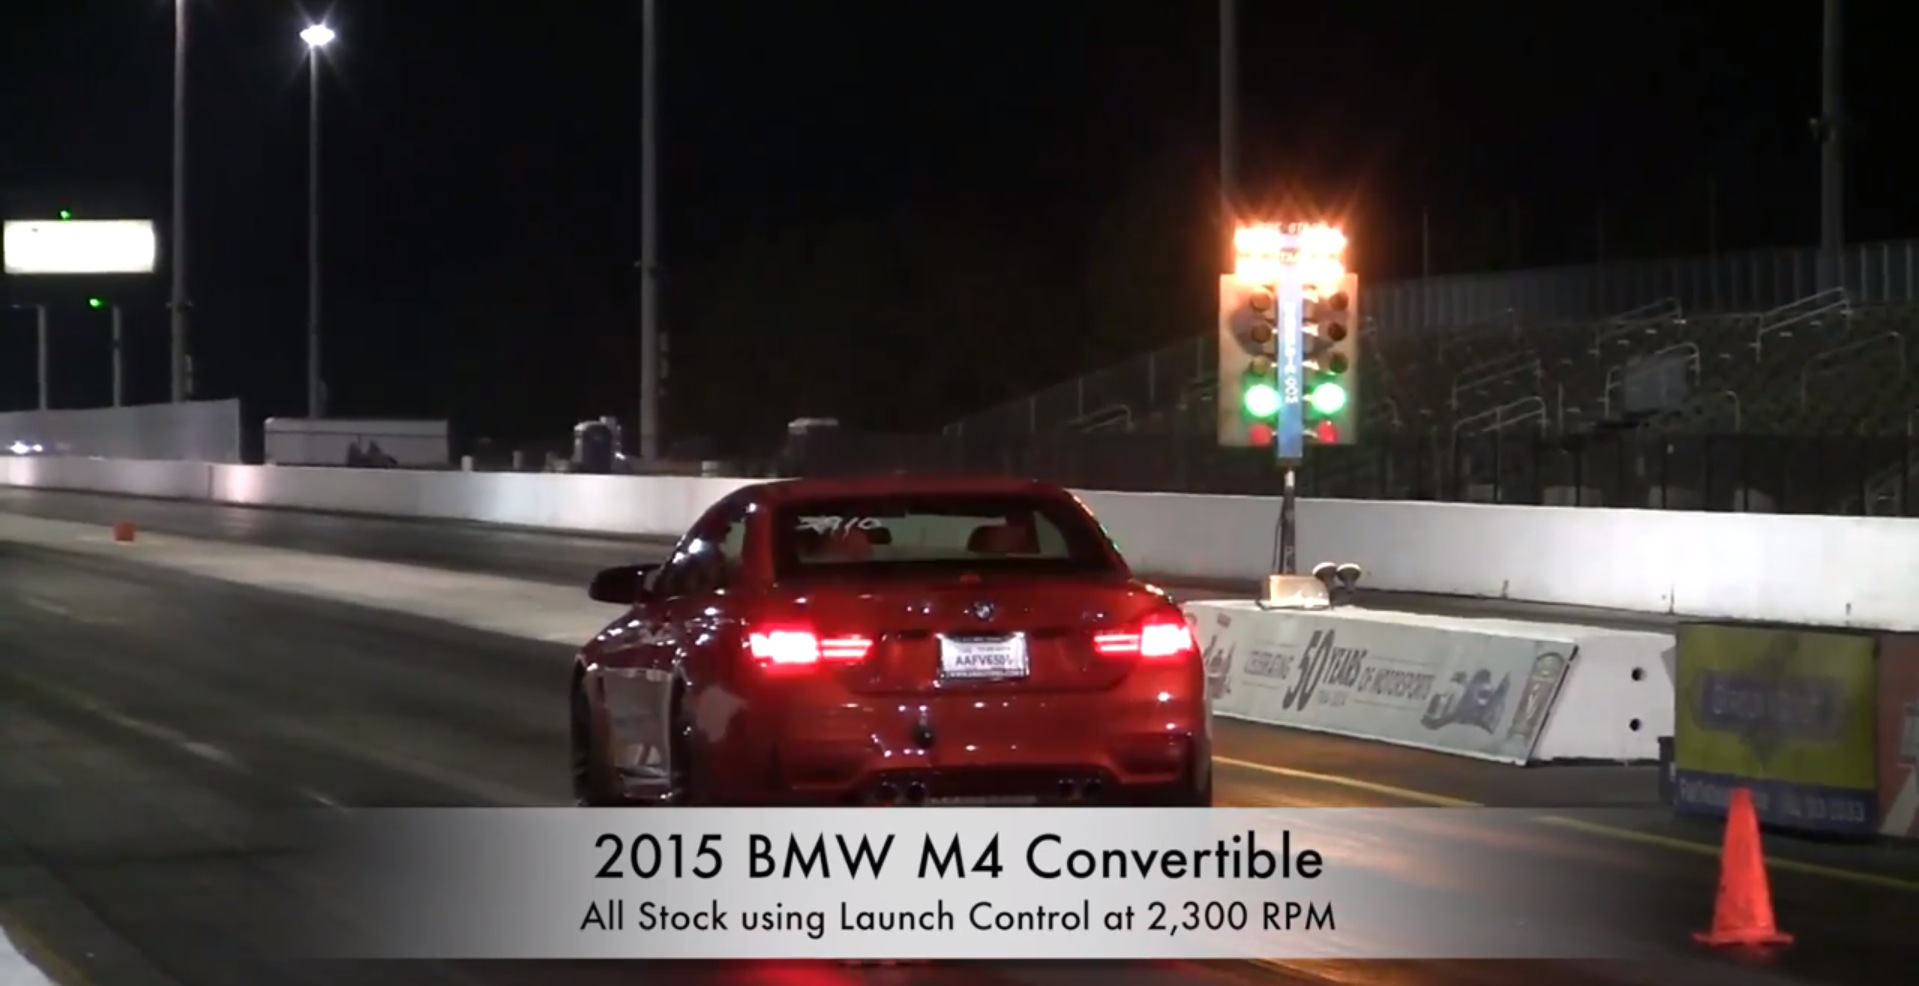 check out the bmw m4 convertible running 12.2 quarter mile at